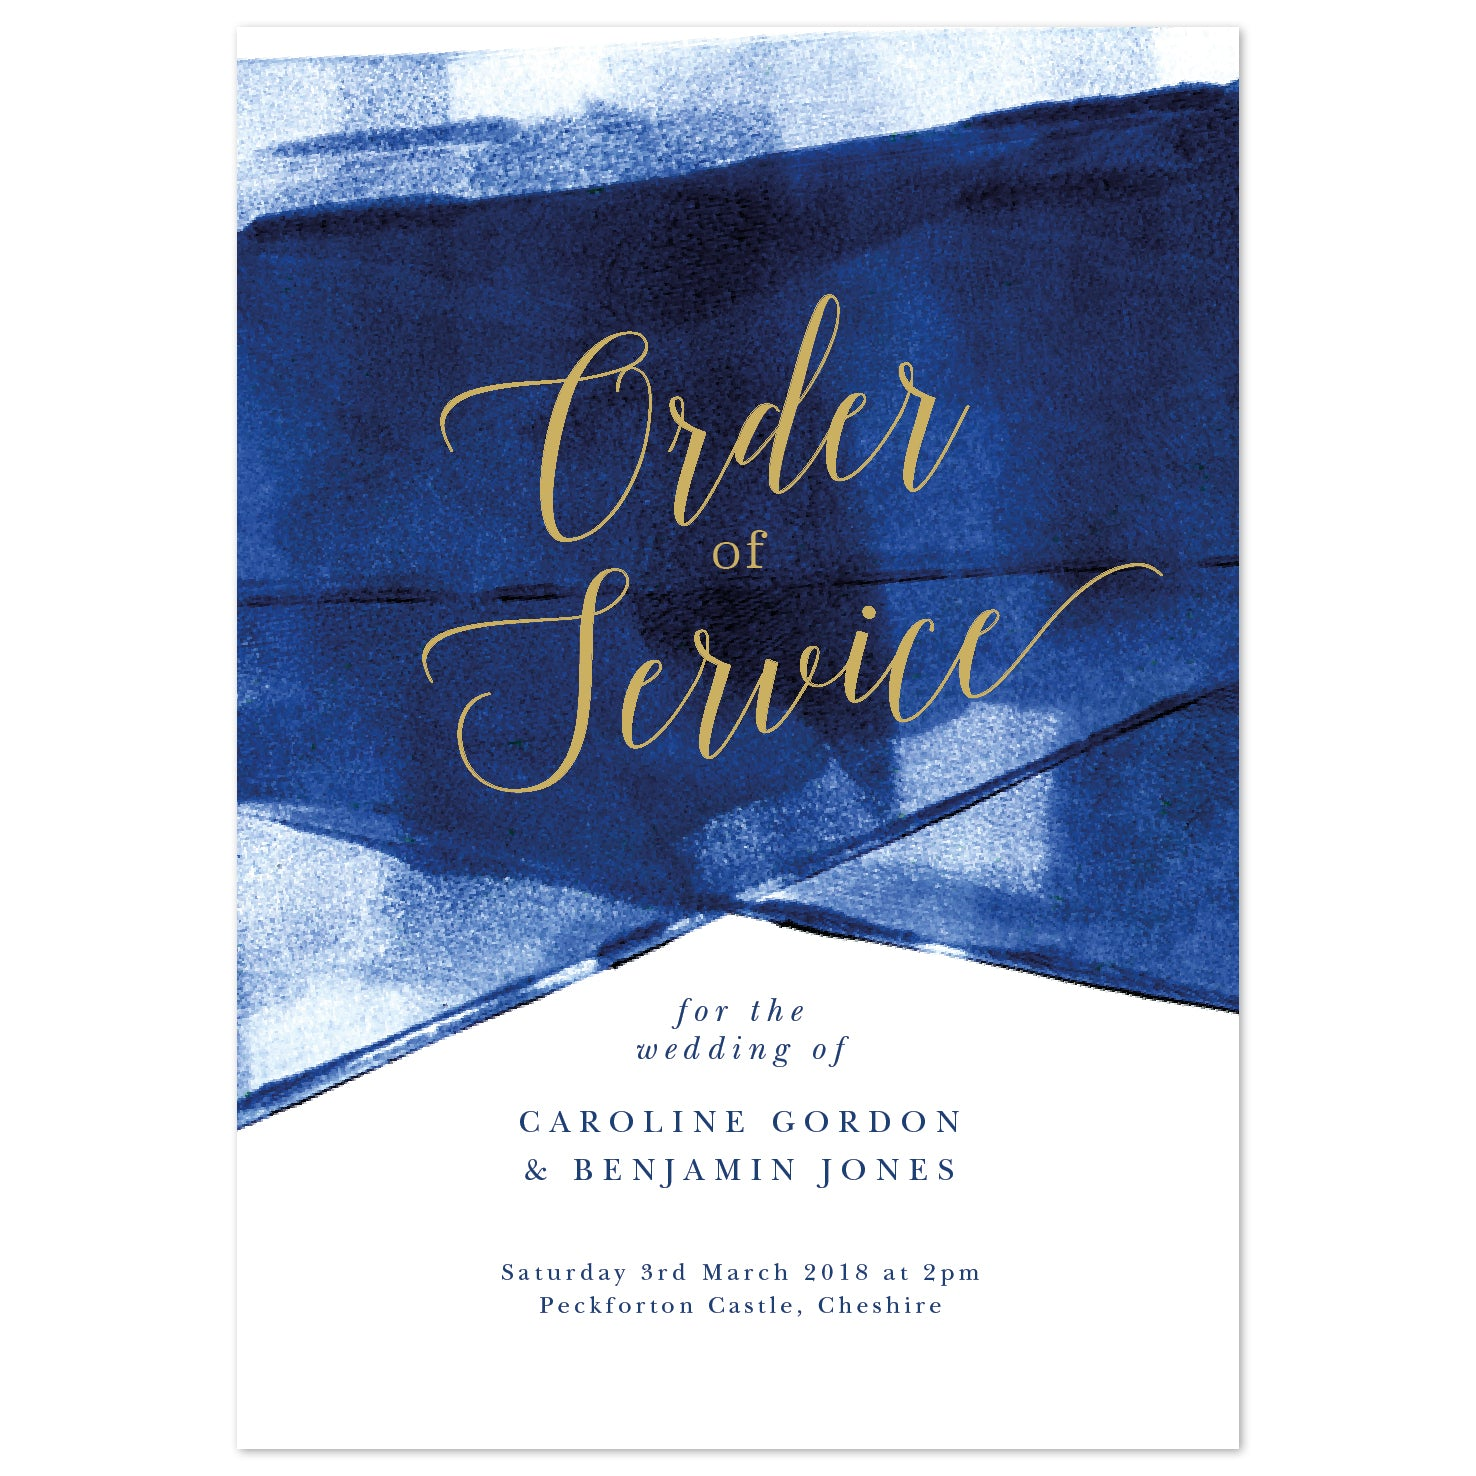 Grace Order of Service booklets *new* navy and gold